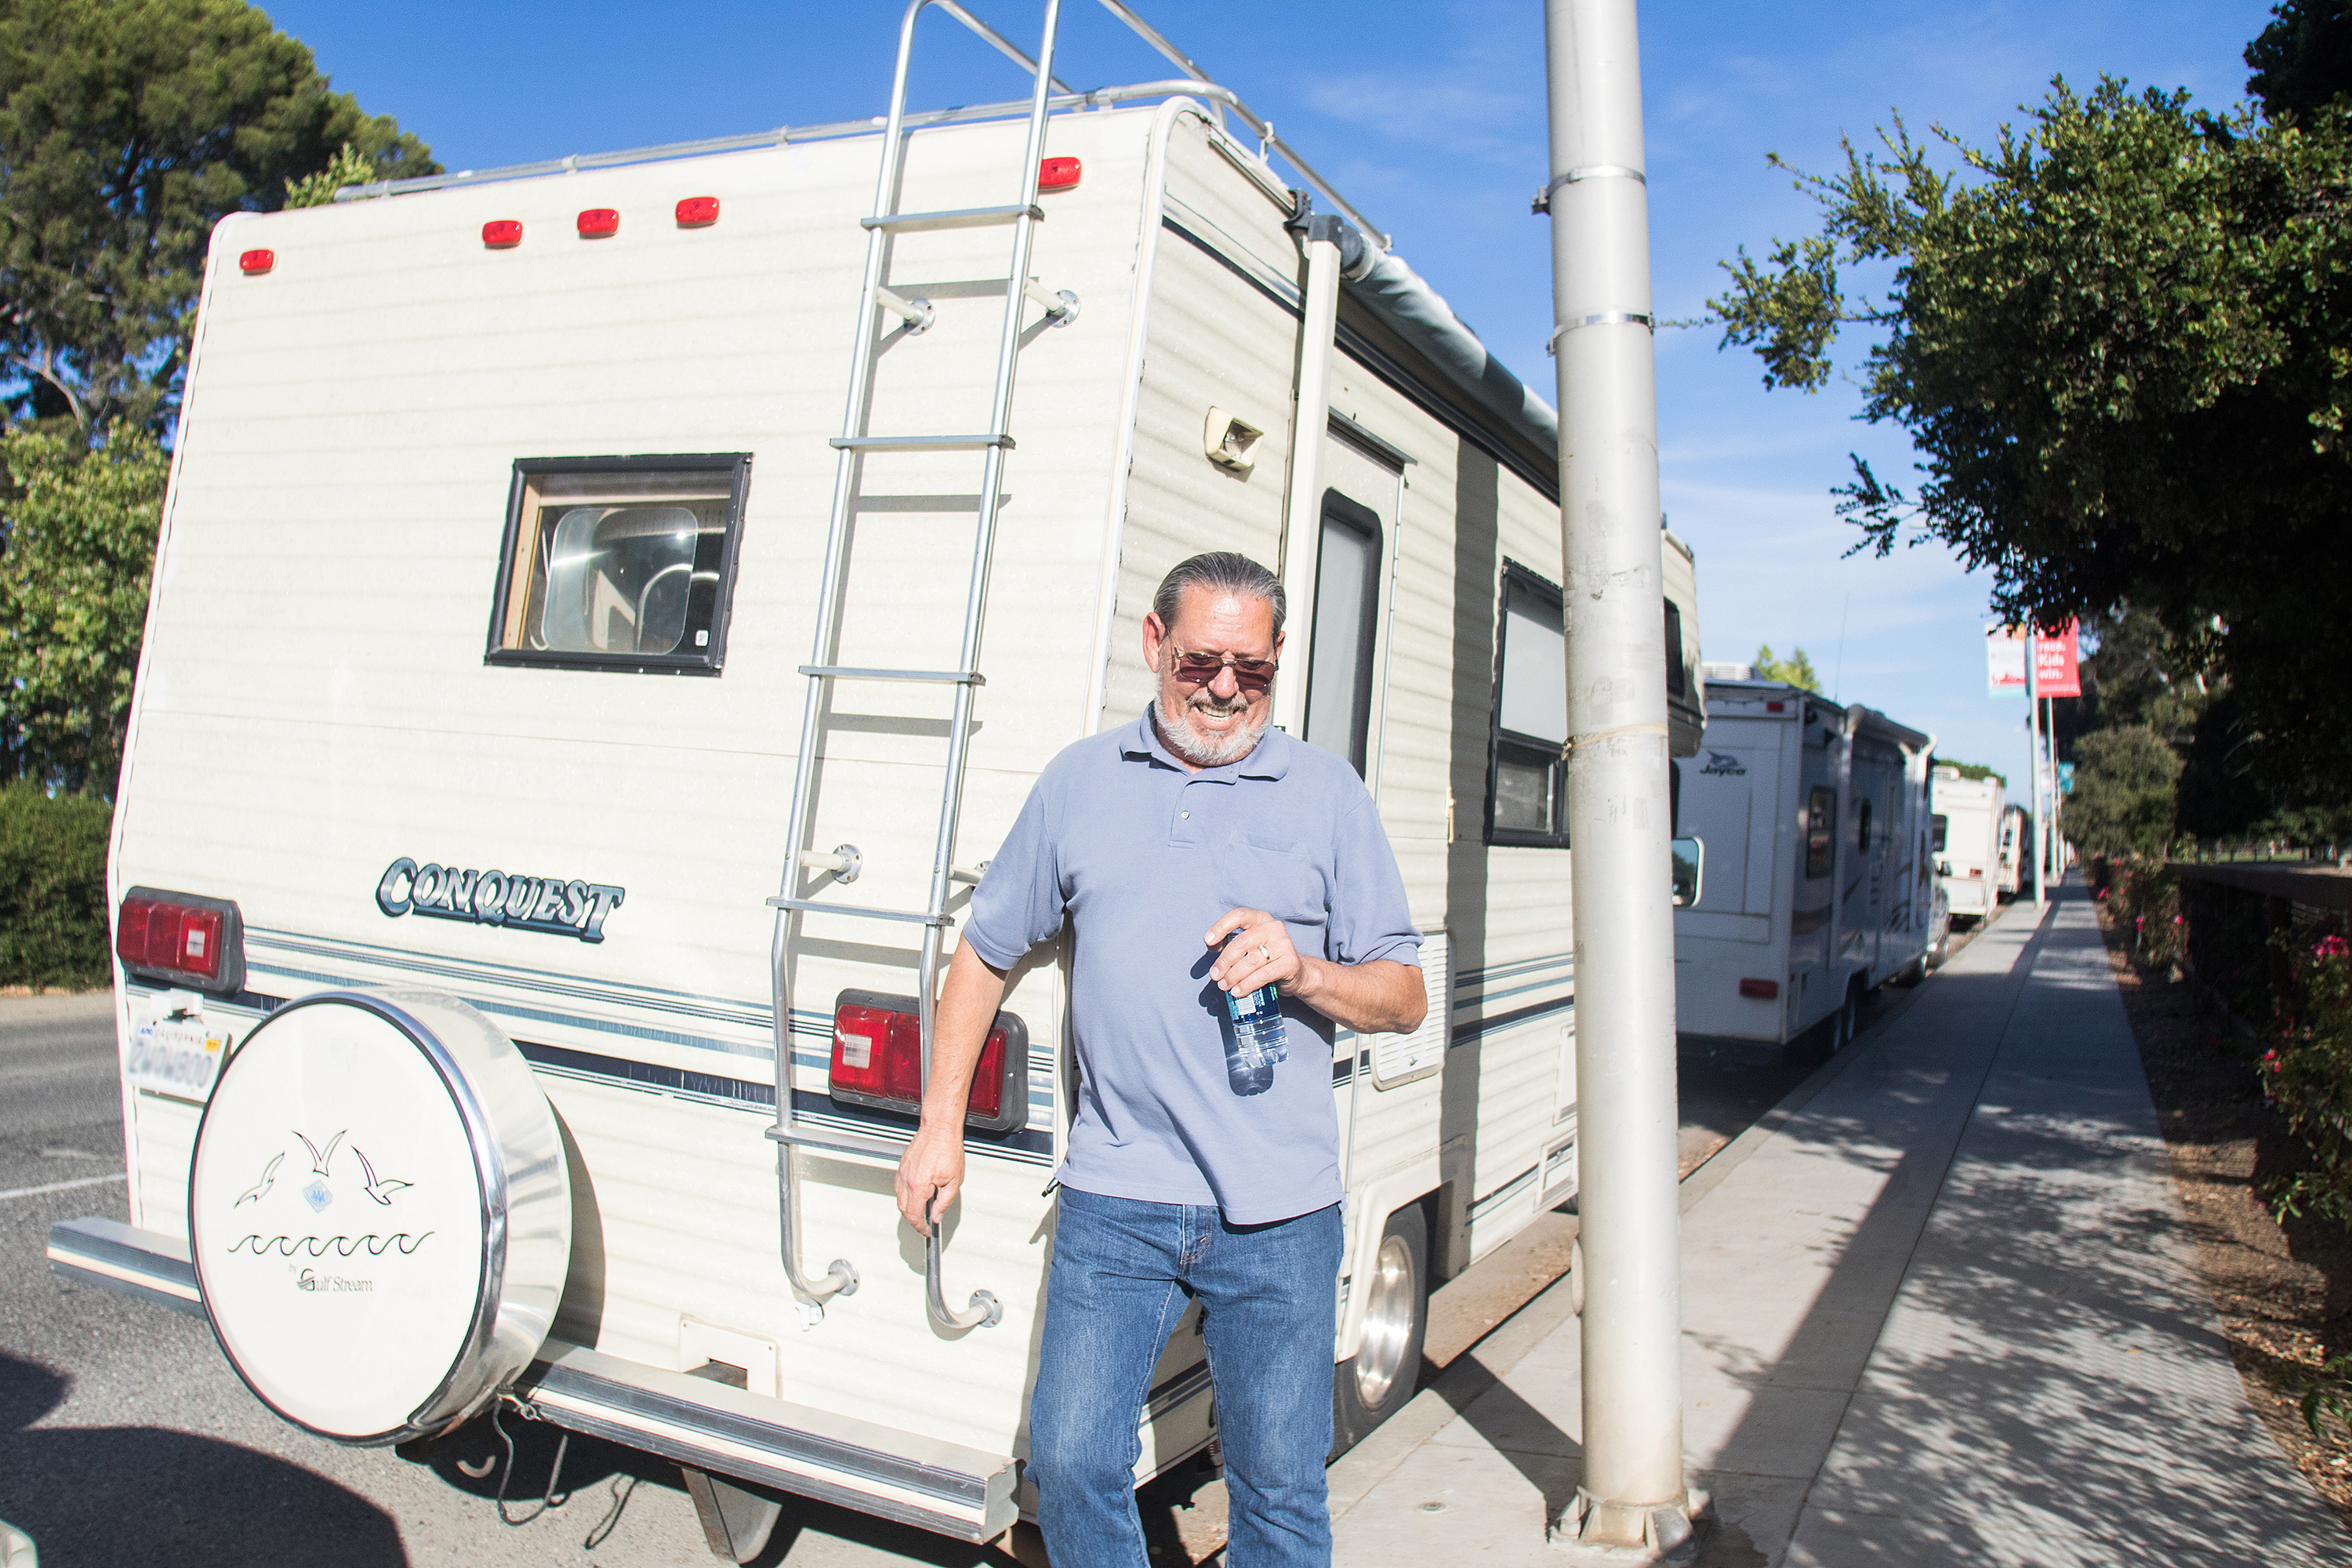 Ray gets ready to head into his RV parked on El Camino Real after working at his full-time job in mechanical operations, a position he's held for over 29 years.